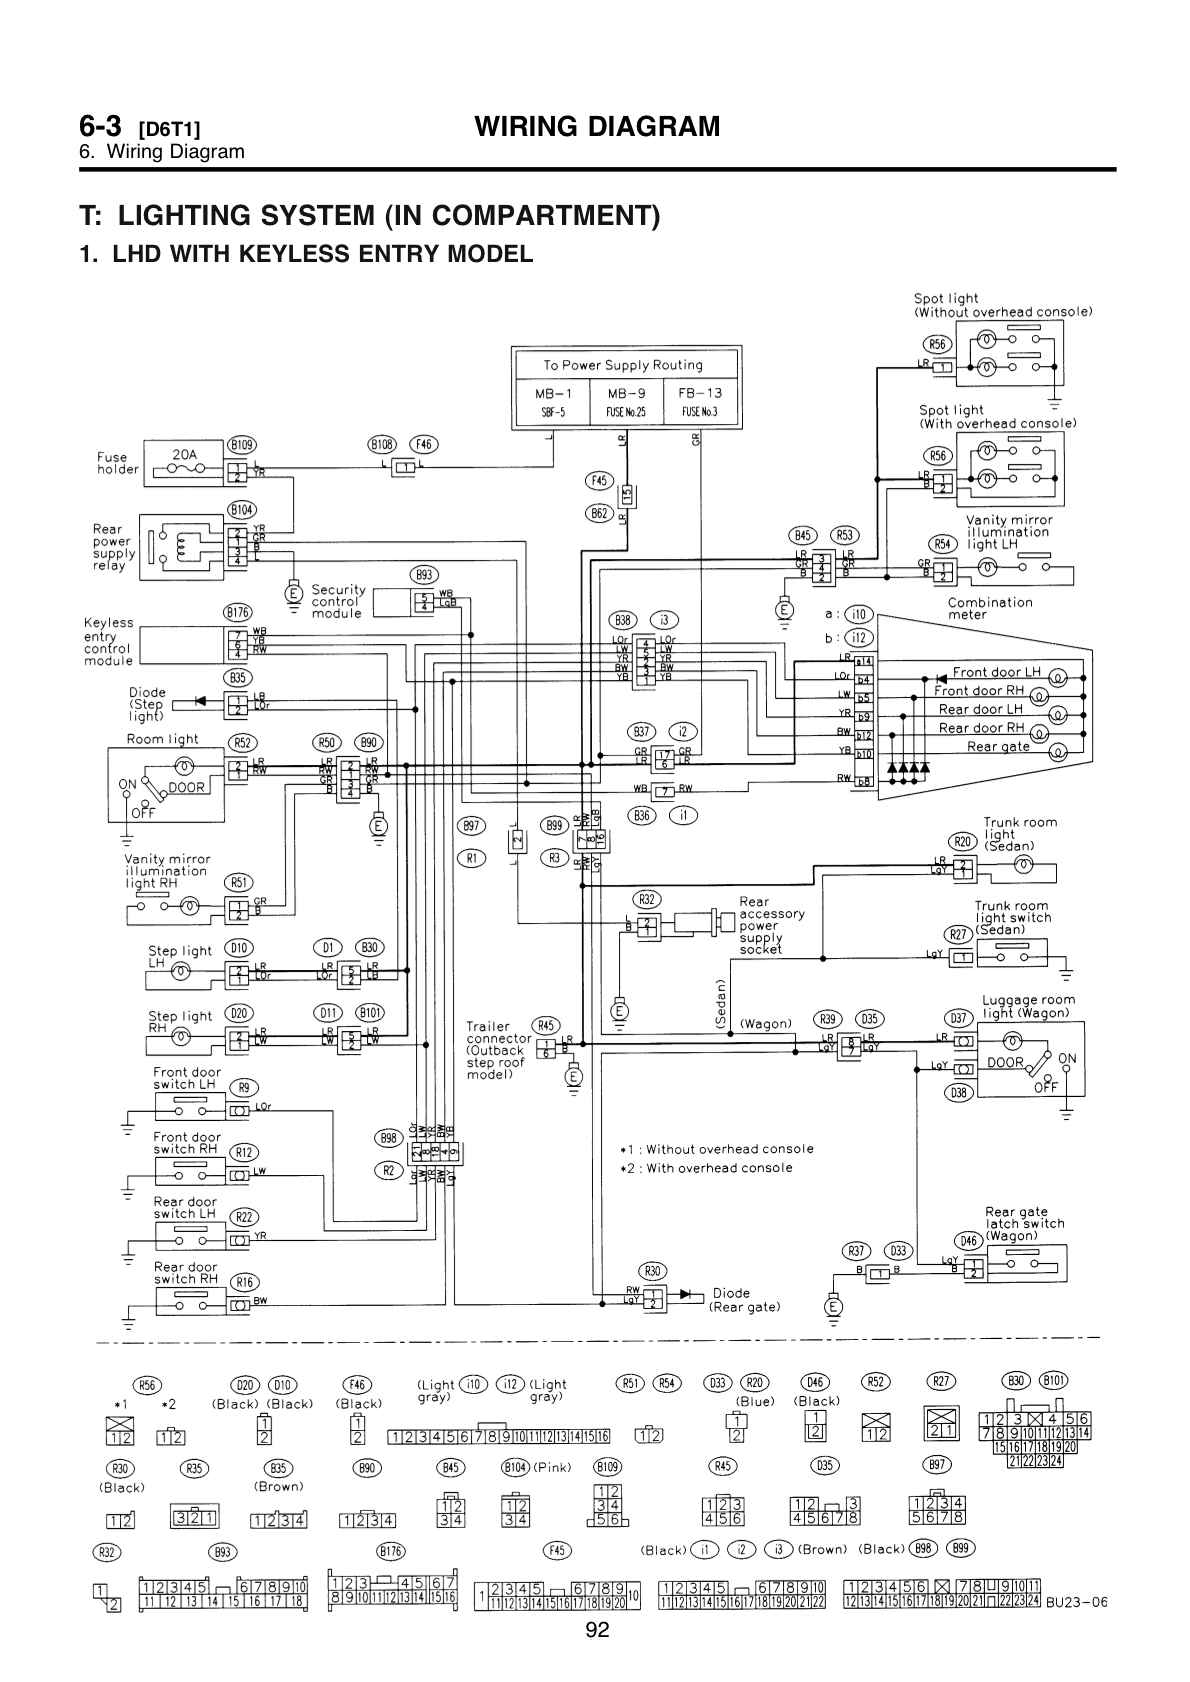 wiring_diagram1 wiring diagram 2009 subaru impreza the wiring diagram 1998 subaru impreza wiring diagram at crackthecode.co